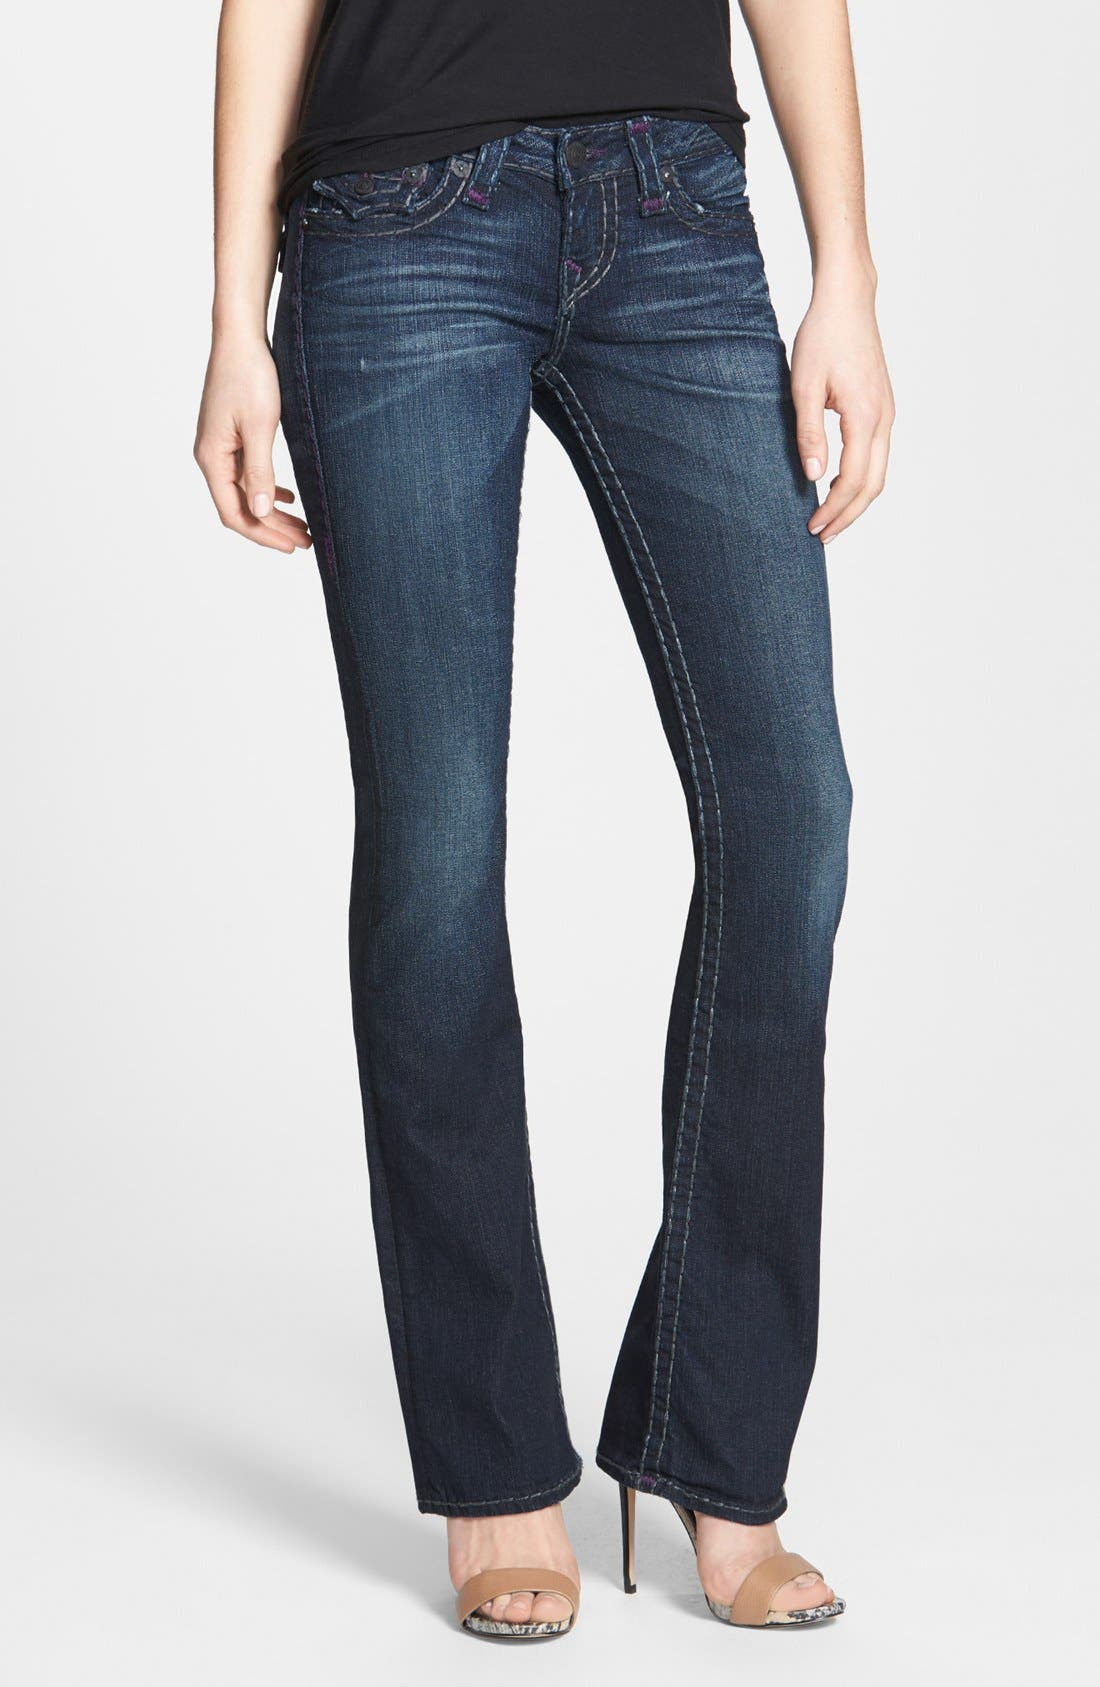 Alternate Image 1 Selected - True Religion Brand Jeans 'Becky' Bootcut Jeans (Blue Water)